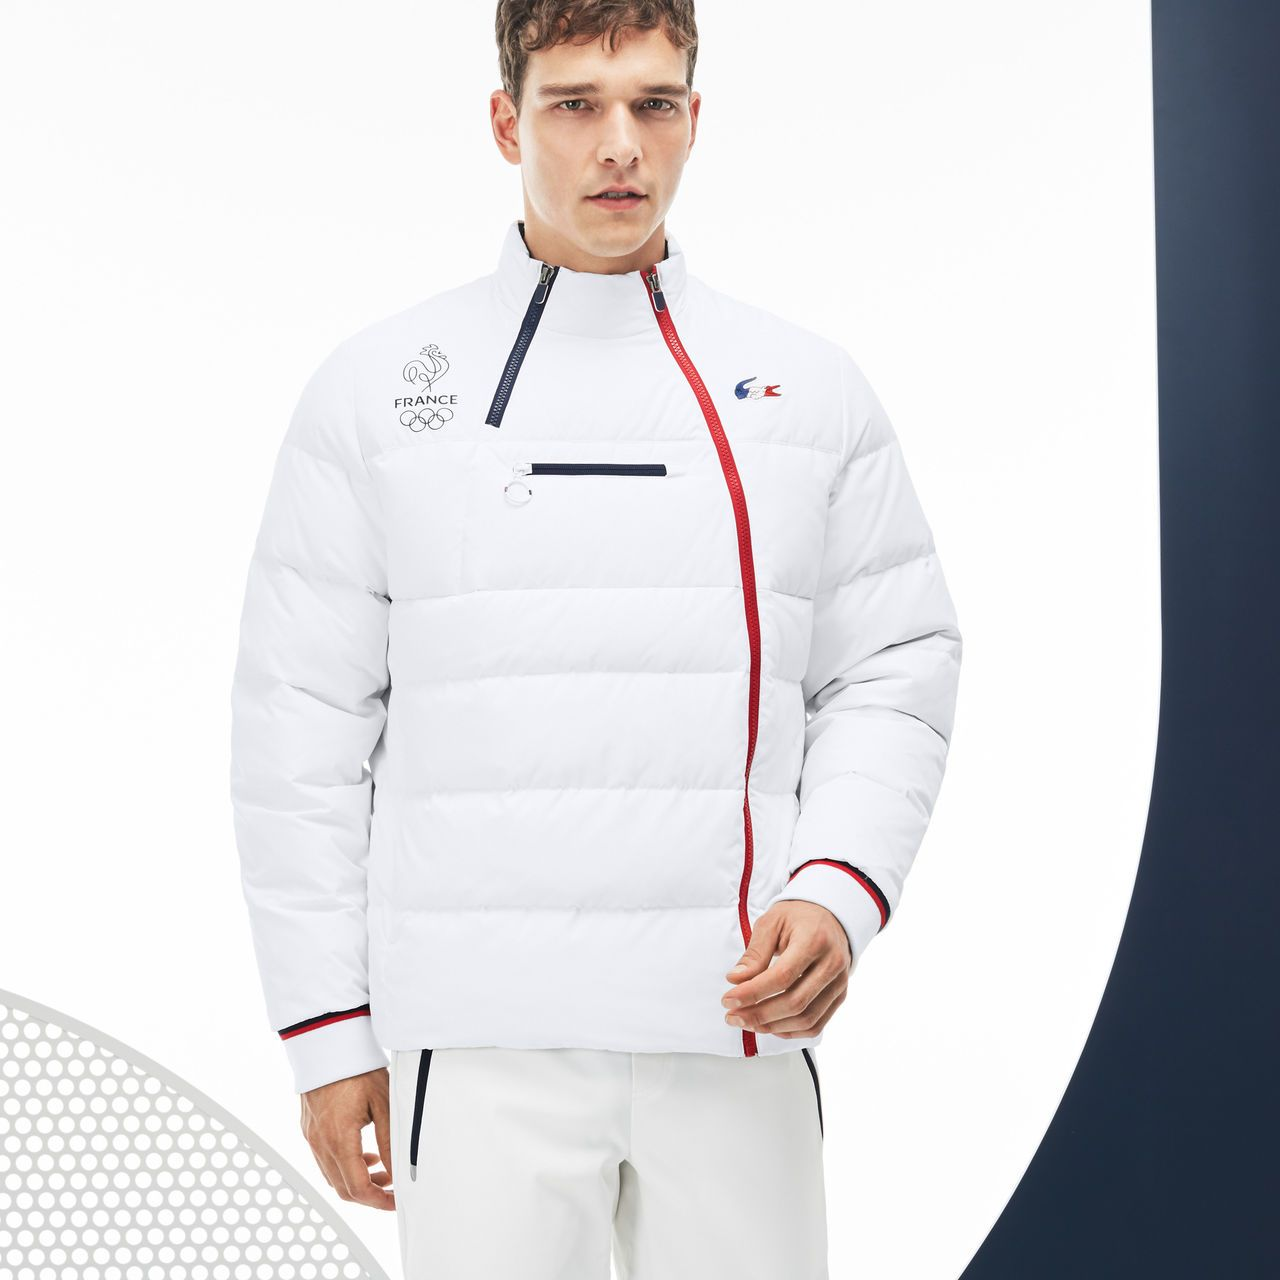 Tww0ysfq Lacoste Collection France Ski Sport Olympique Doudoune tPxw8qYP